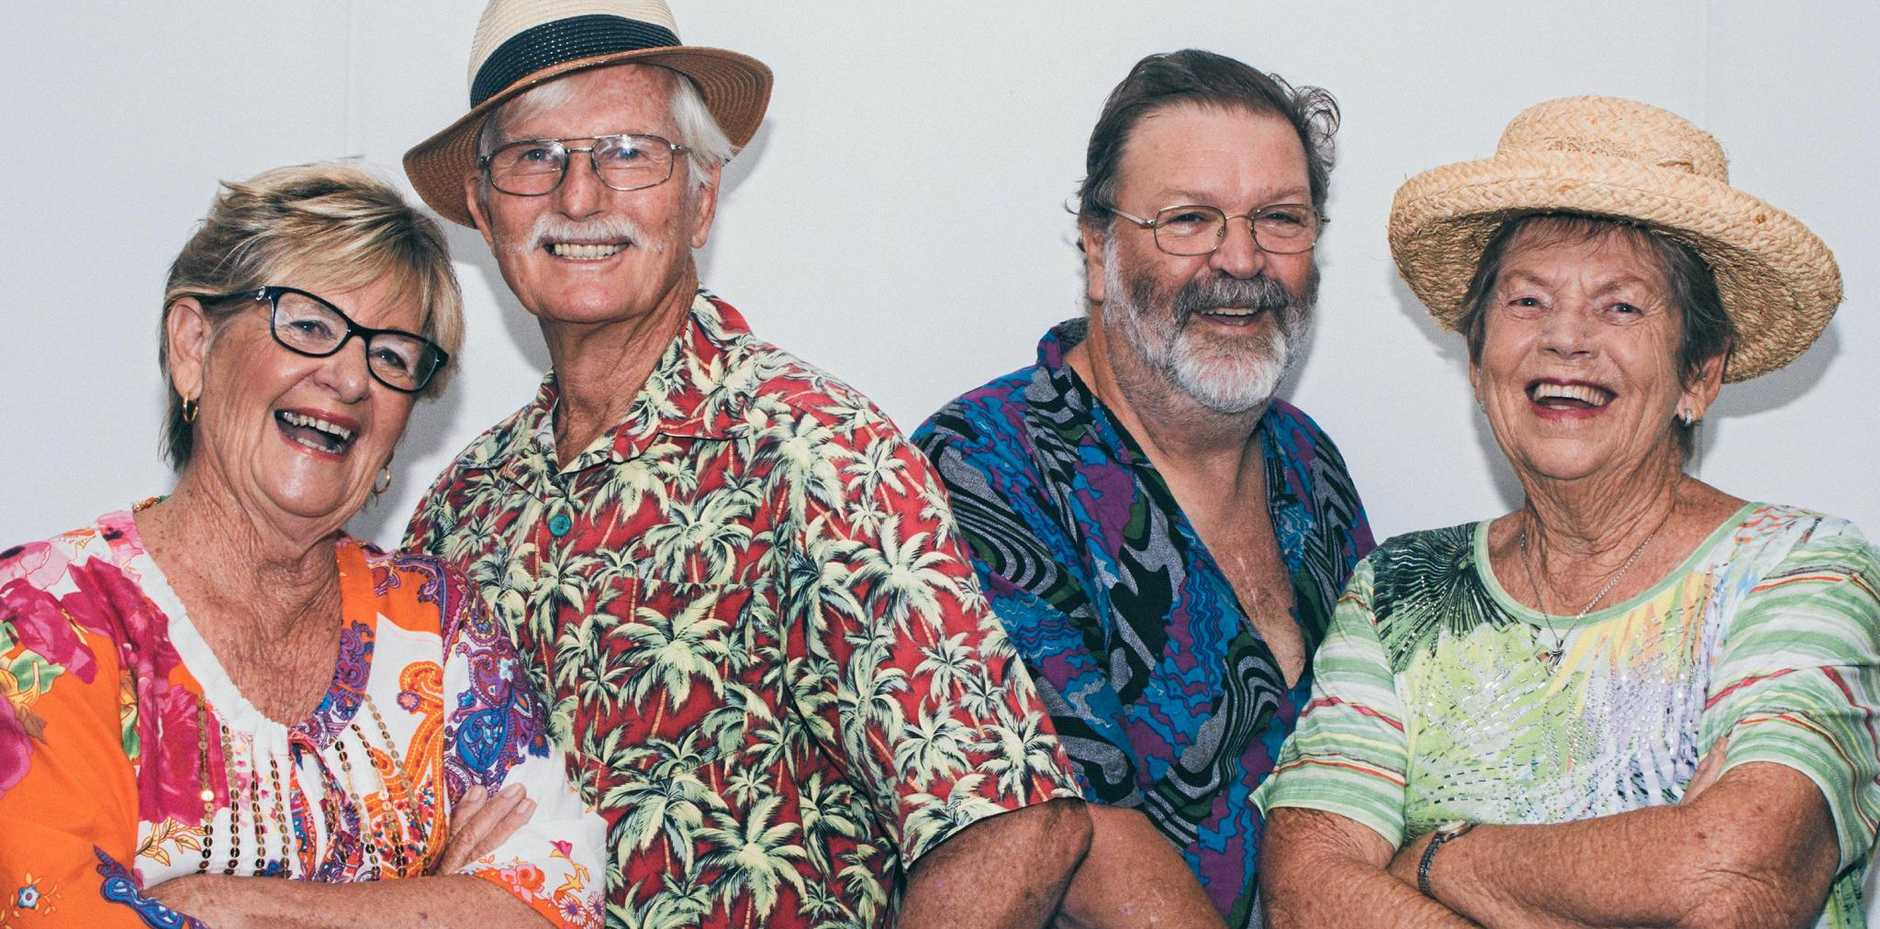 GOLDEN CELEBRATION: The Merryatric Players will be performing Fifty Years of Sunshine at The Events Centre, Caloundra on April 23.